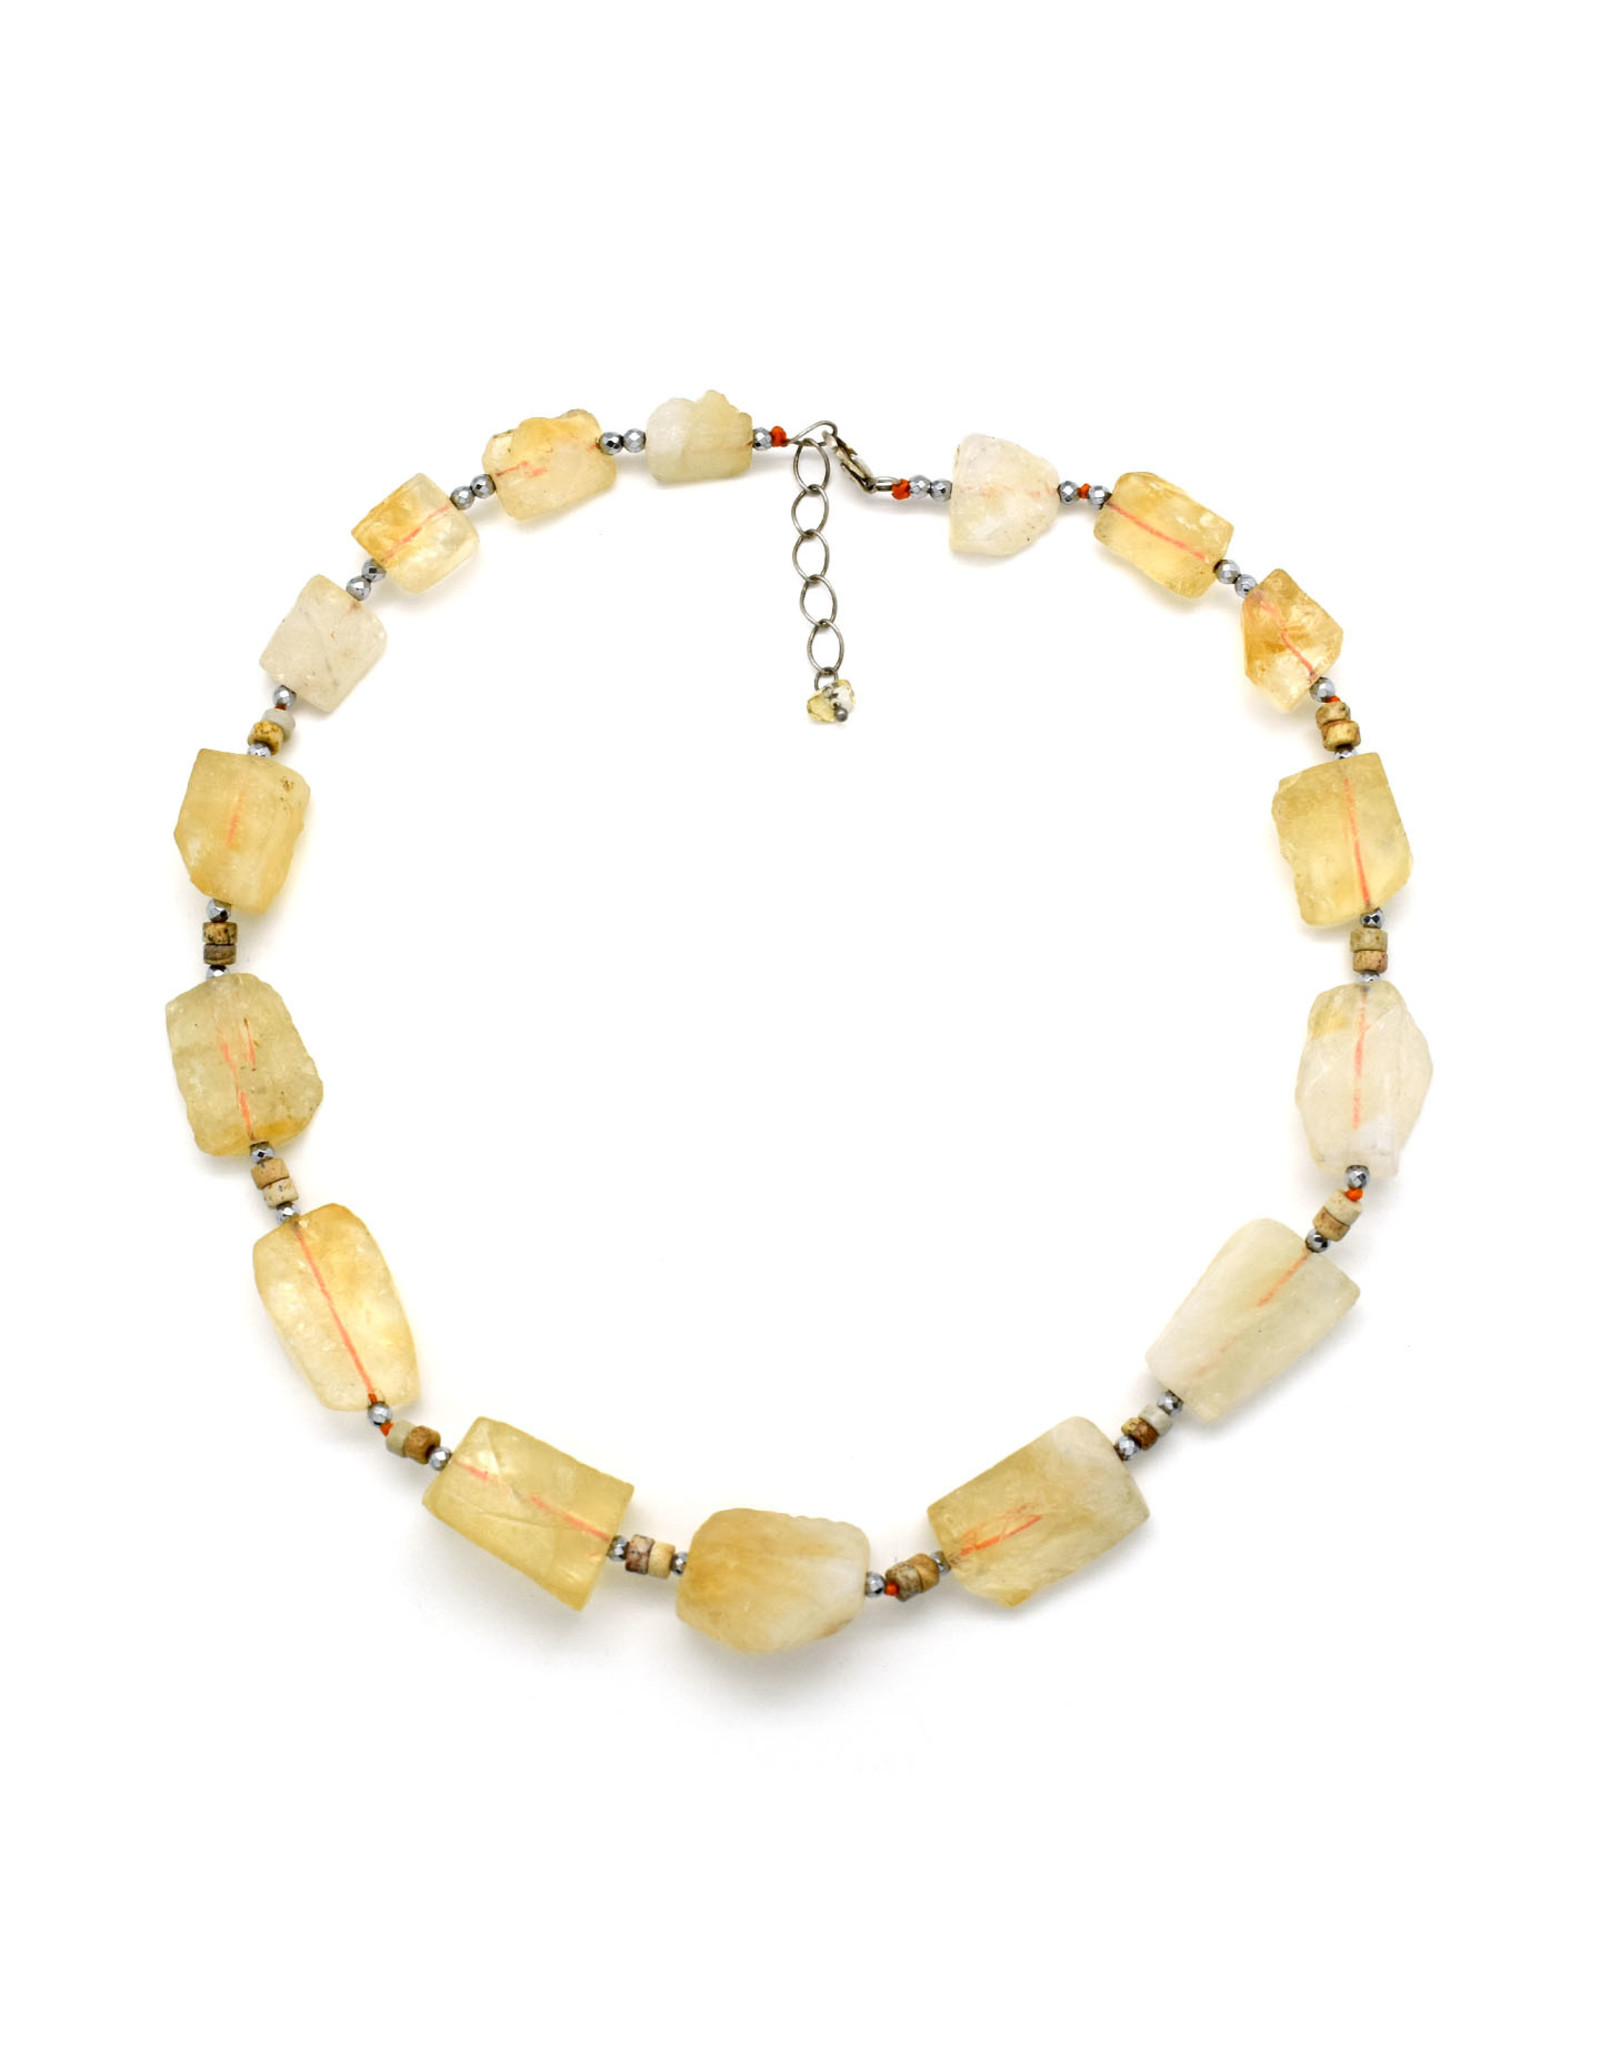 Citrine Chunk with Pale Pink Stones Necklace